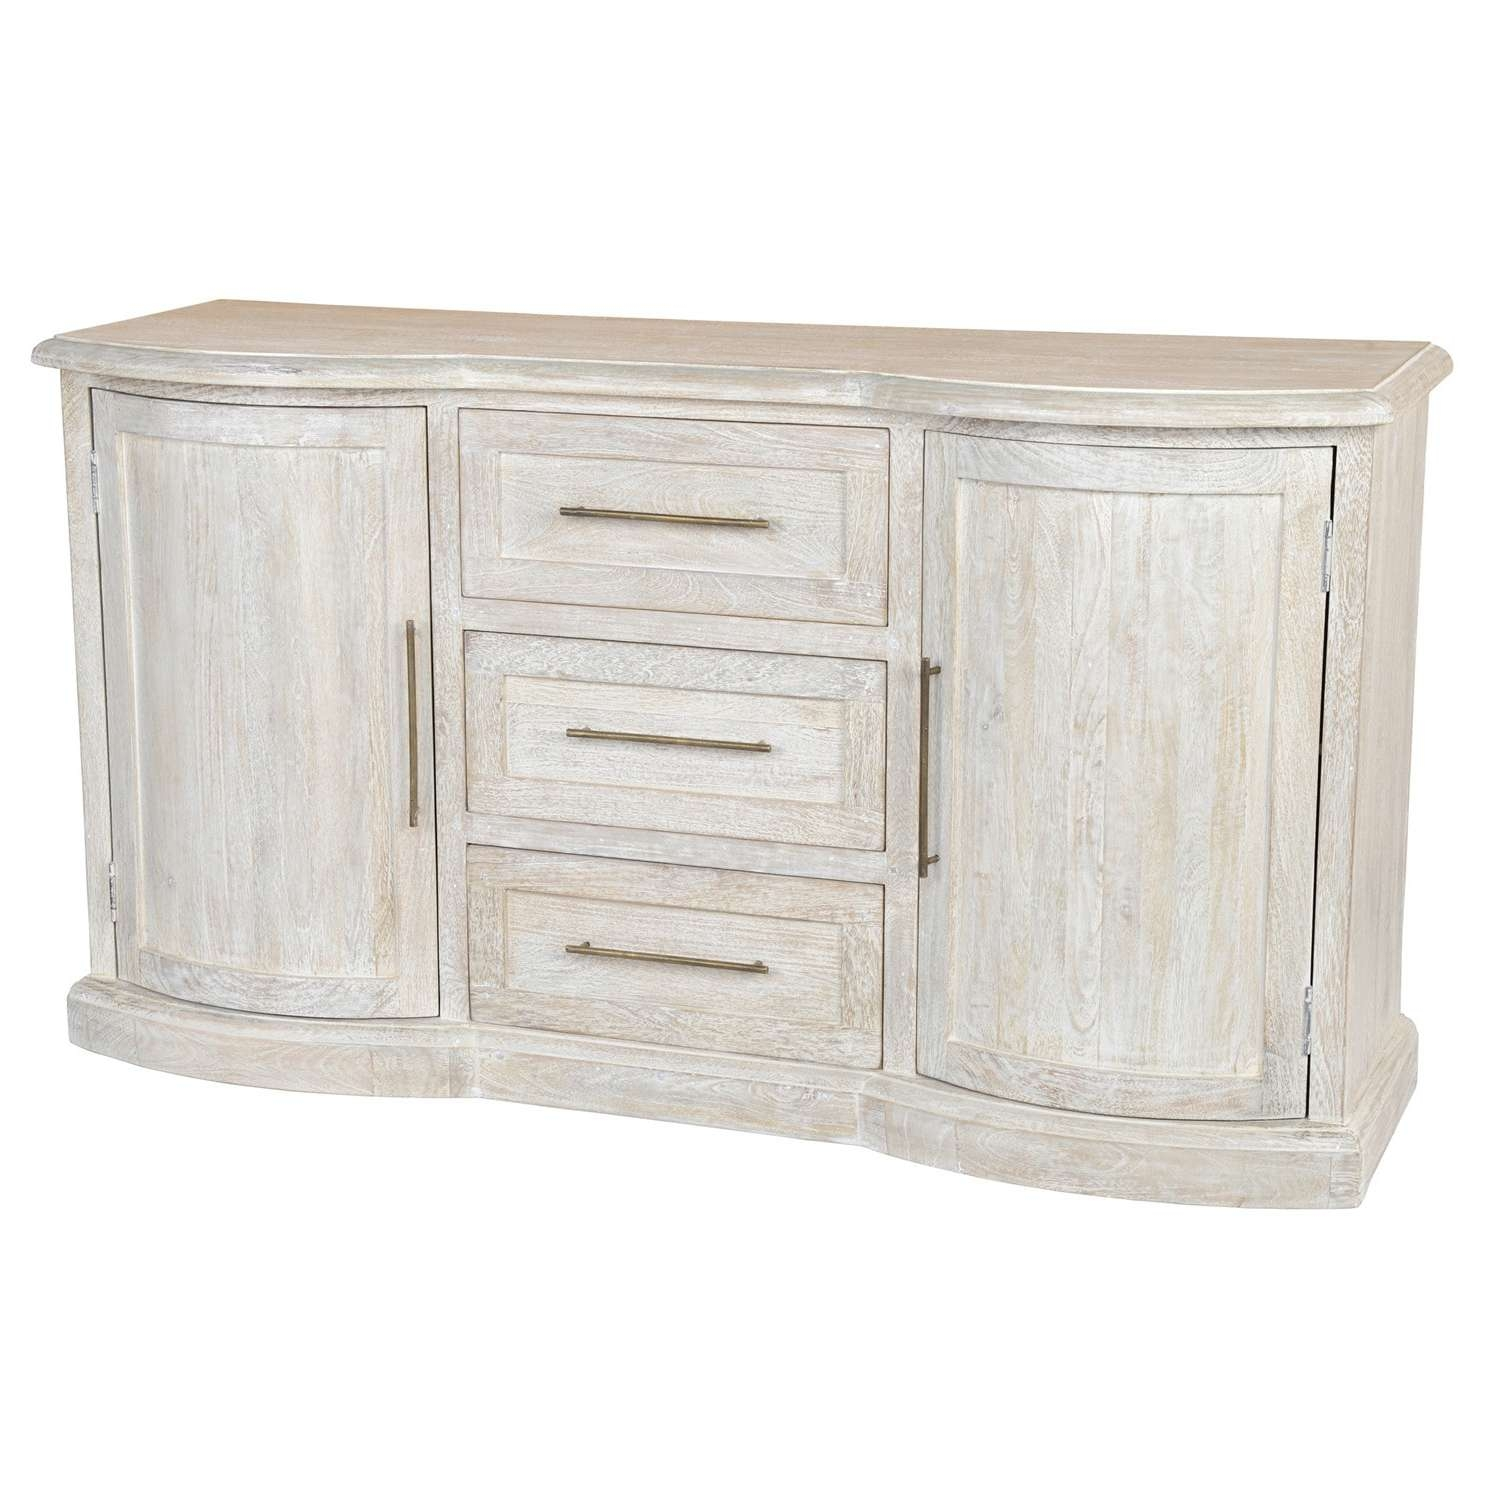 Kosas Home Norman Antique White Solid Wood Sideboard – Free Within Antique White Sideboards (View 10 of 20)